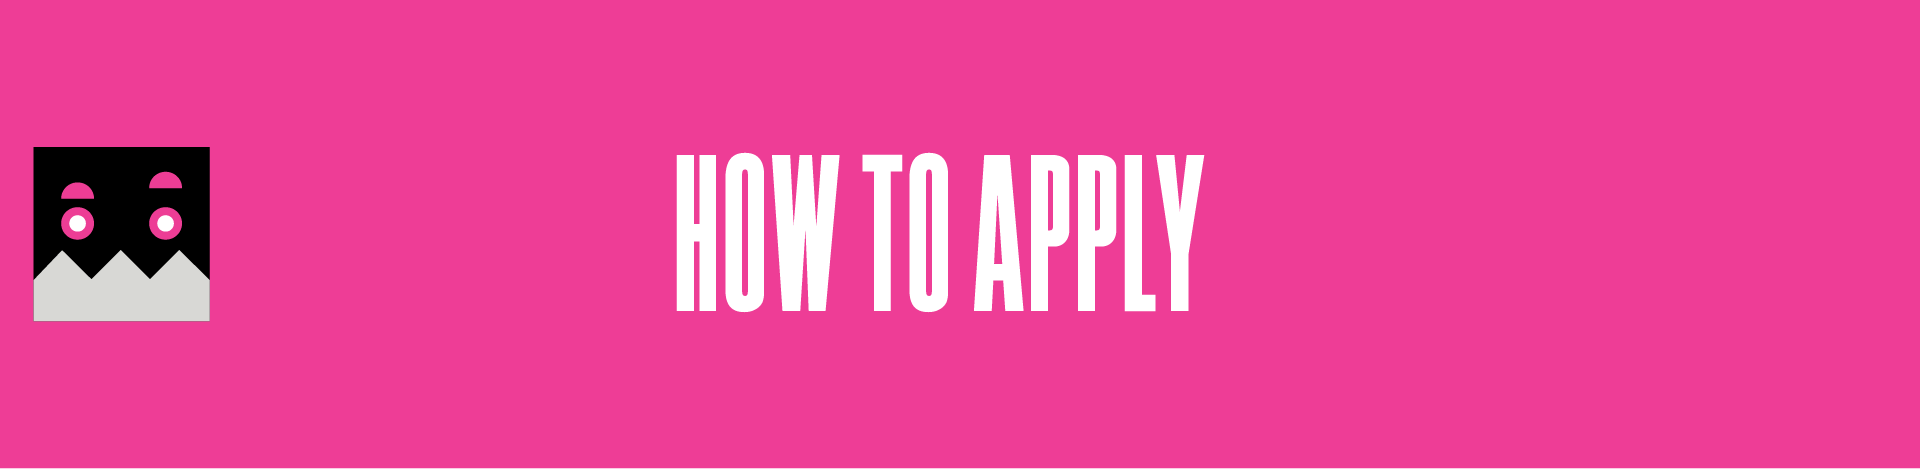 How to apply.png